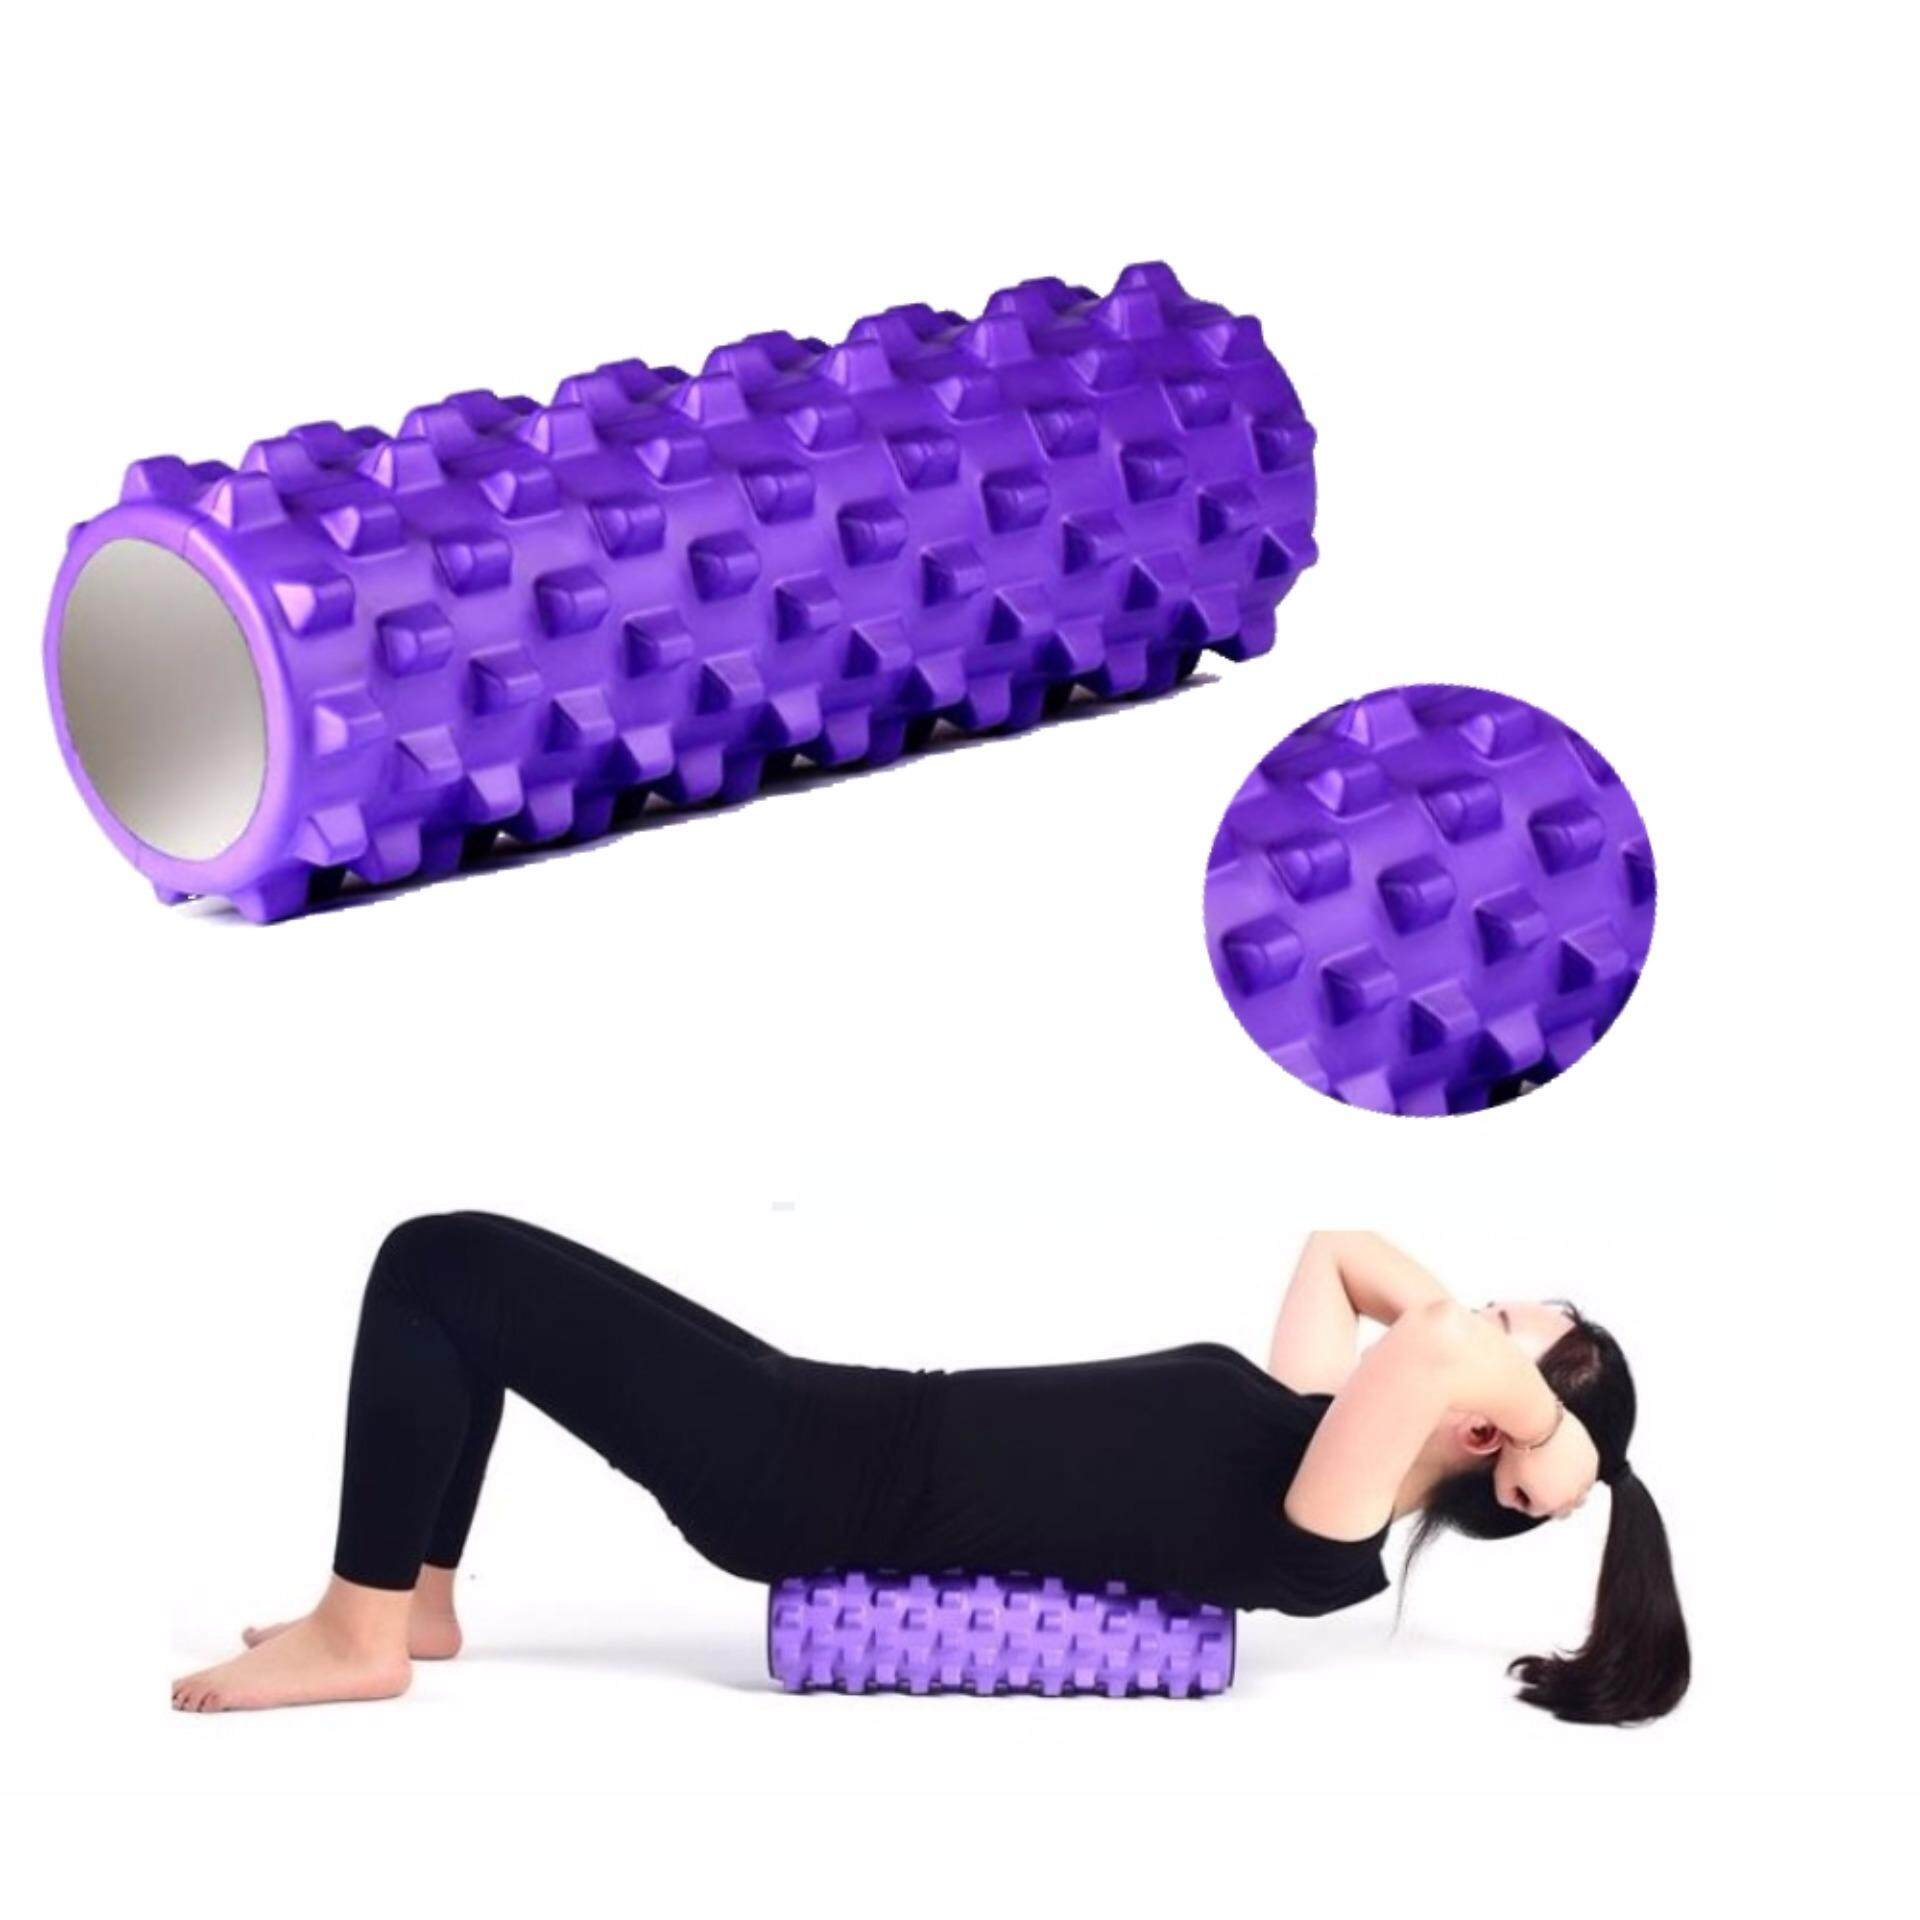 Foam Rollers by SellinCost reviews, ratings and best price